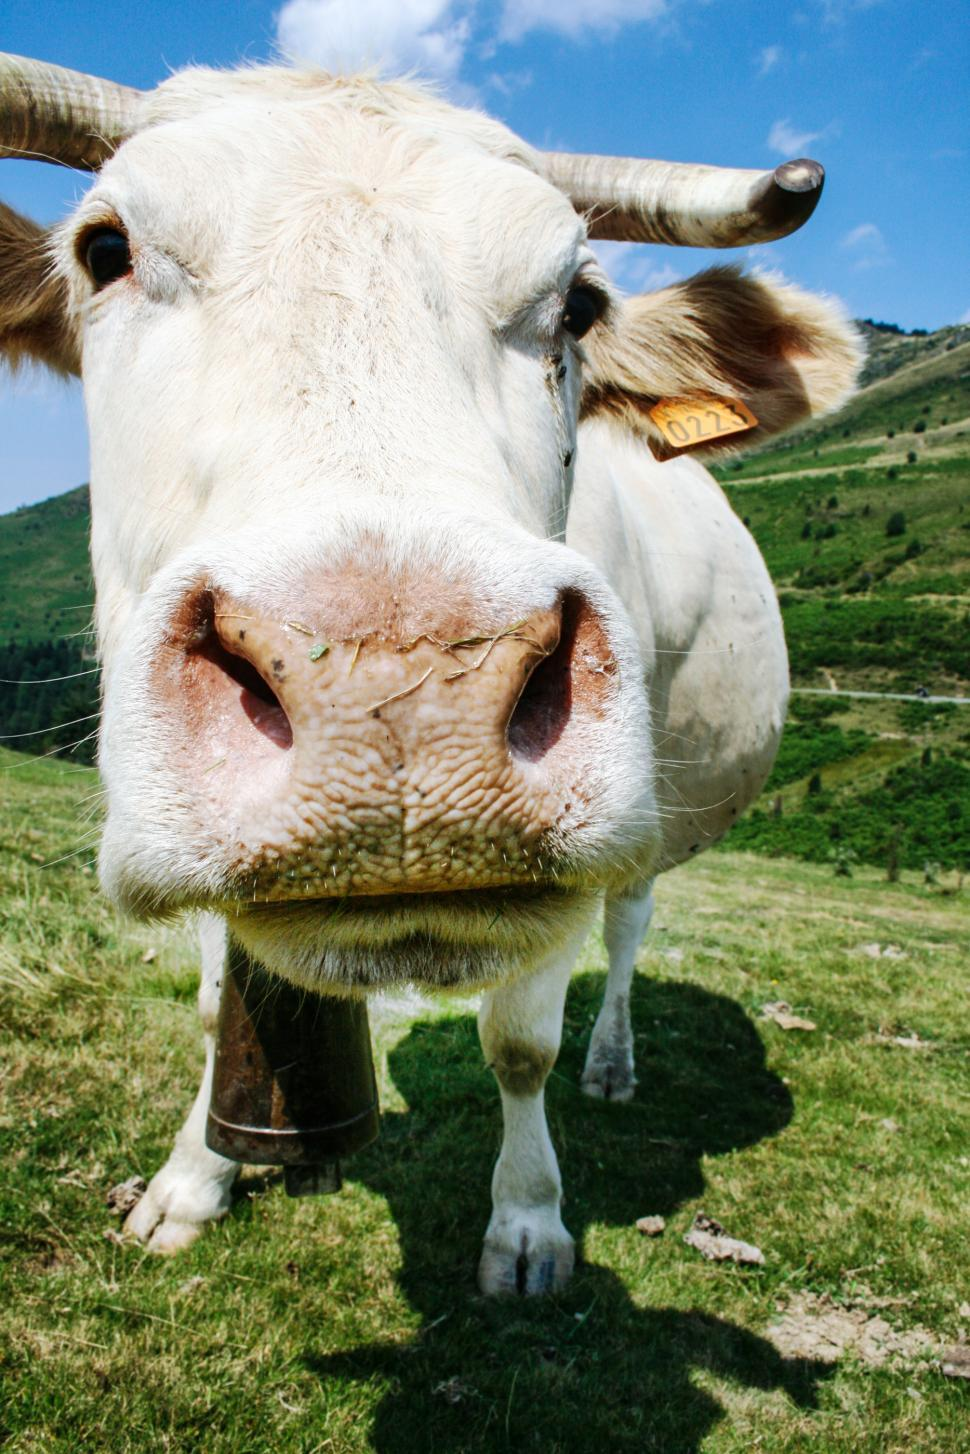 Download Free Stock HD Photo of The Cow on grass Online